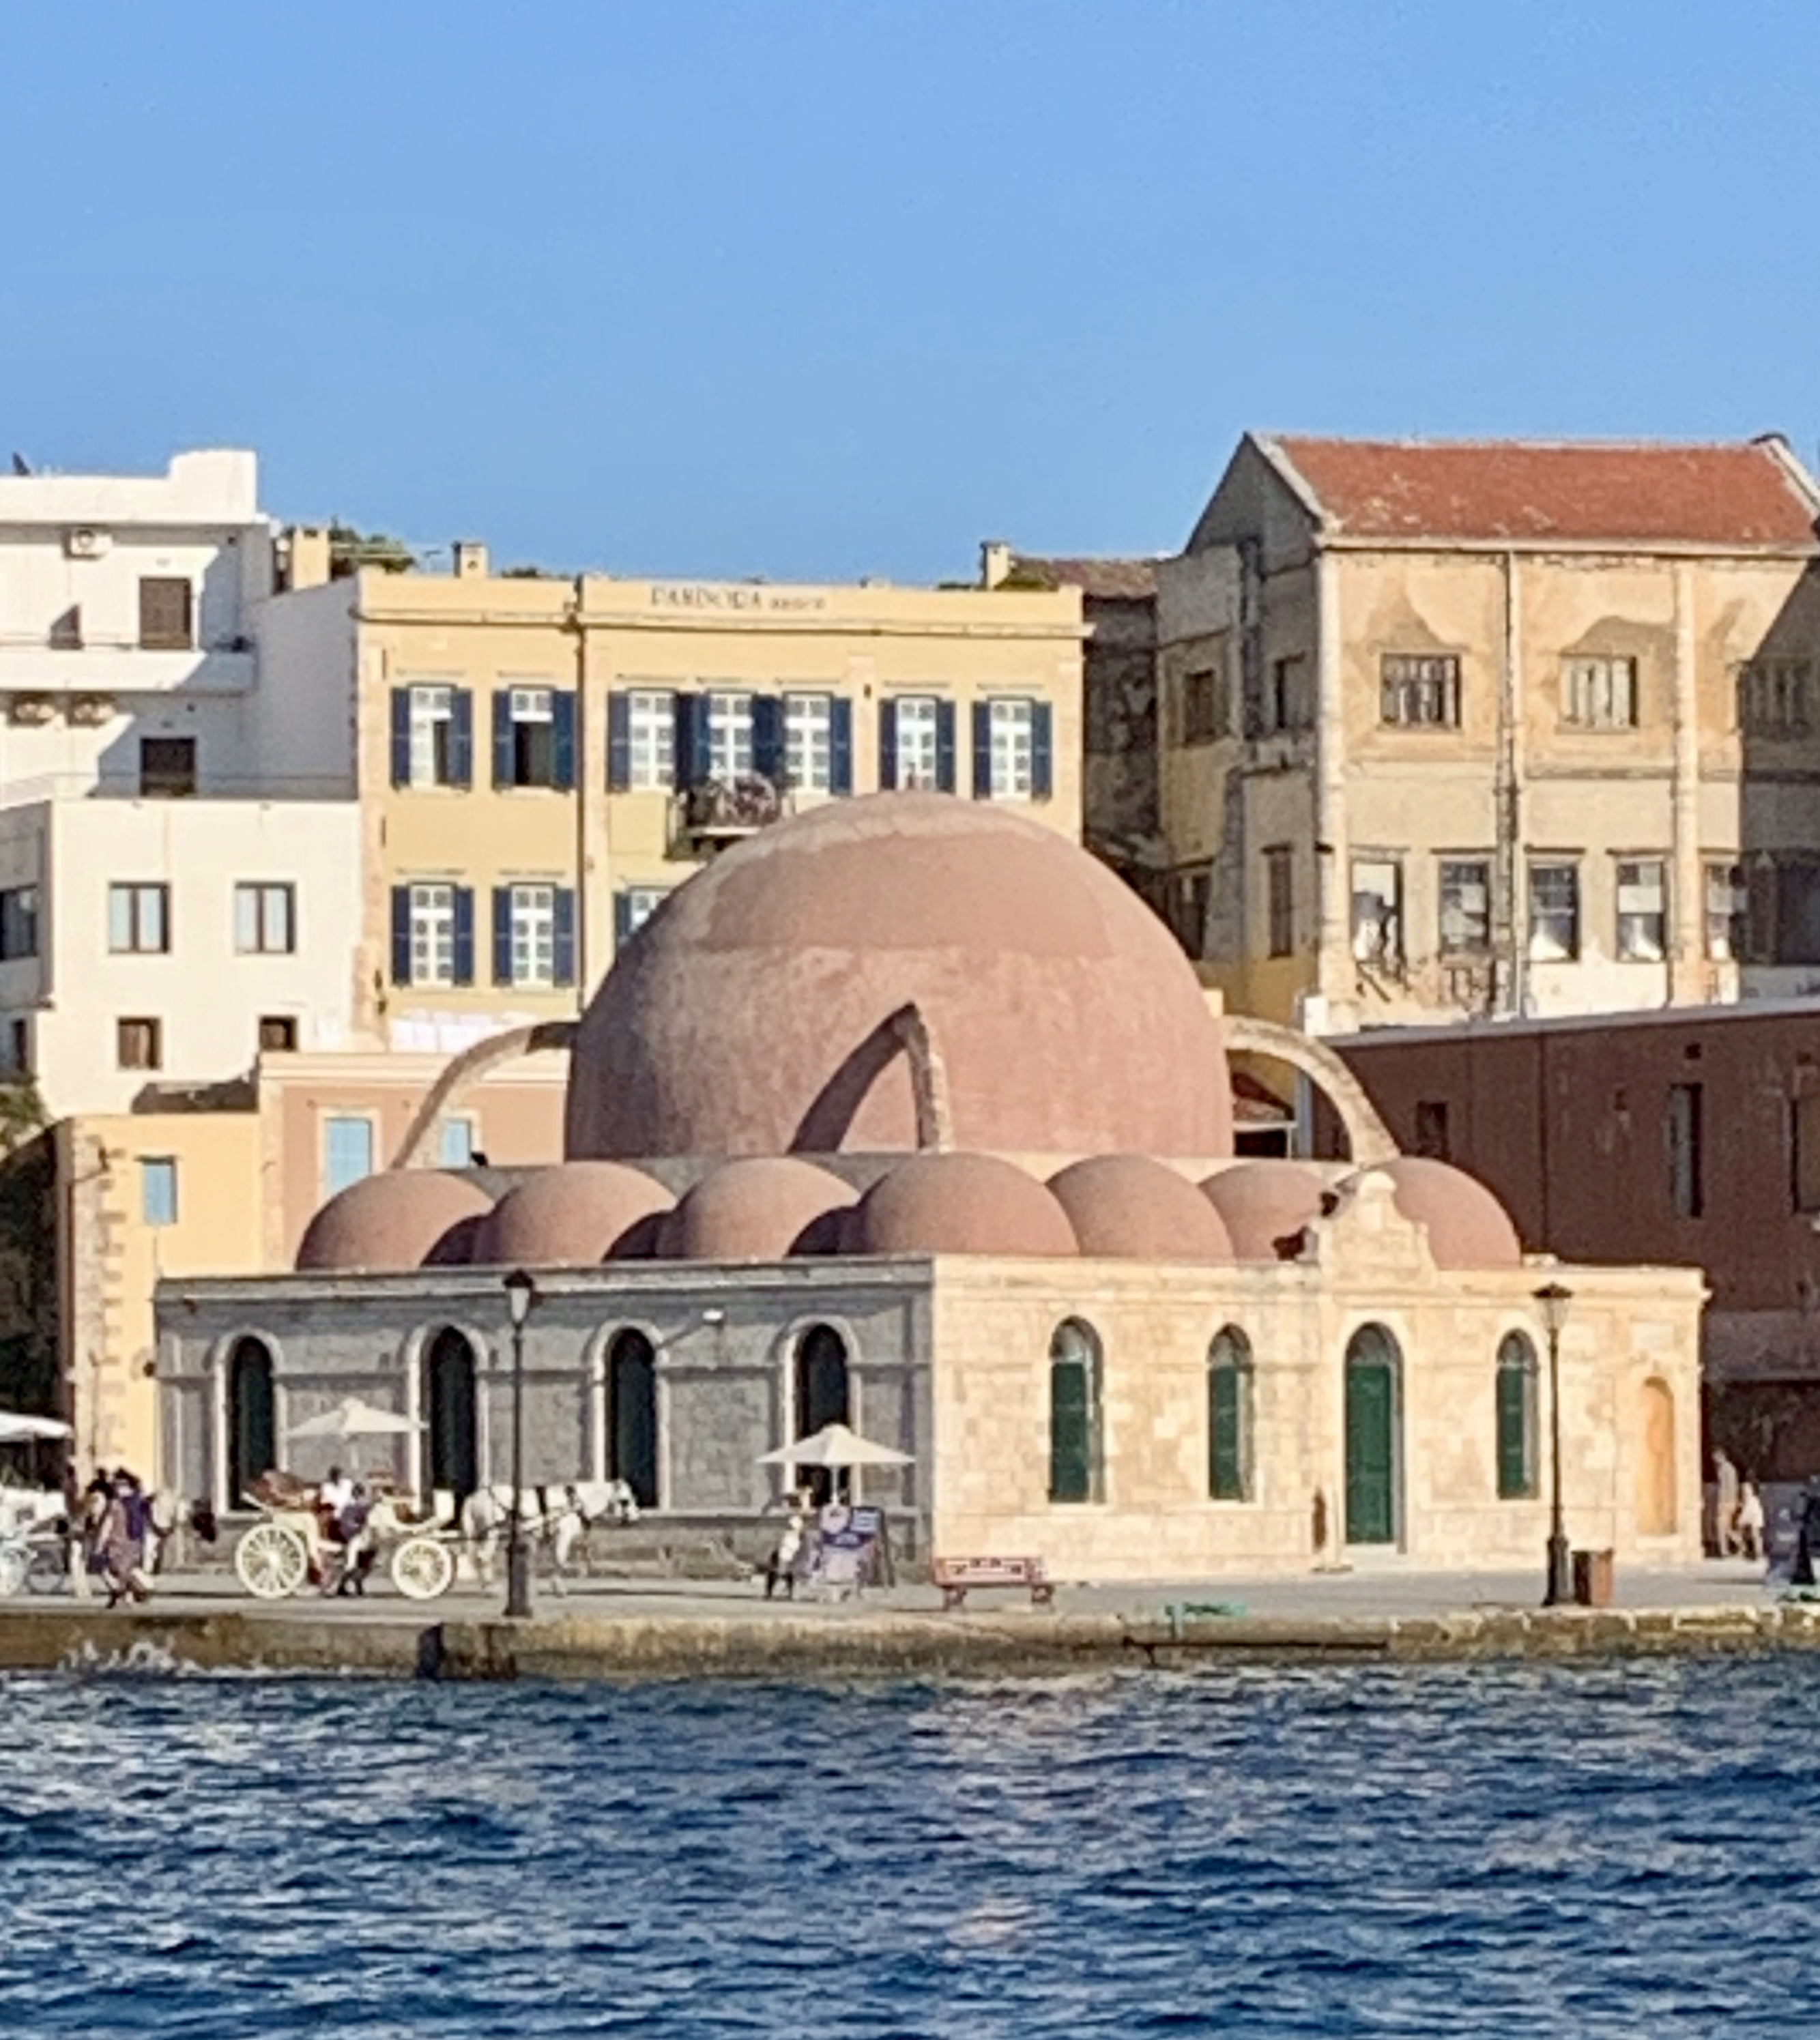 Ottoman Mosque at Chania harbor